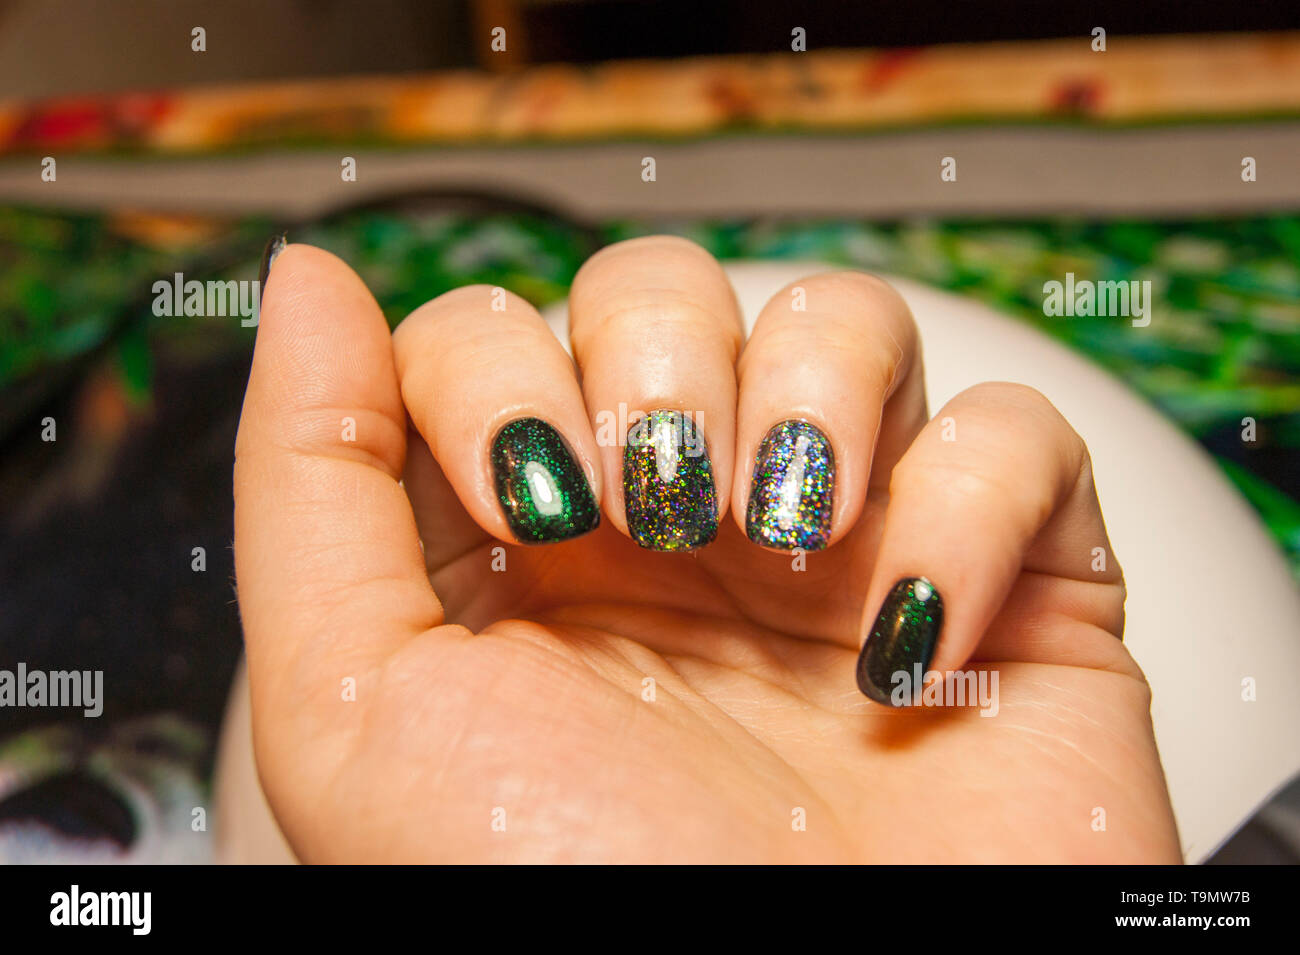 Women S Hands Beautiful Green Manicure Nail Polish On Nails Of Different Shades Of Green With A Slight Sheen And Large Shimmer Stock Photo Alamy